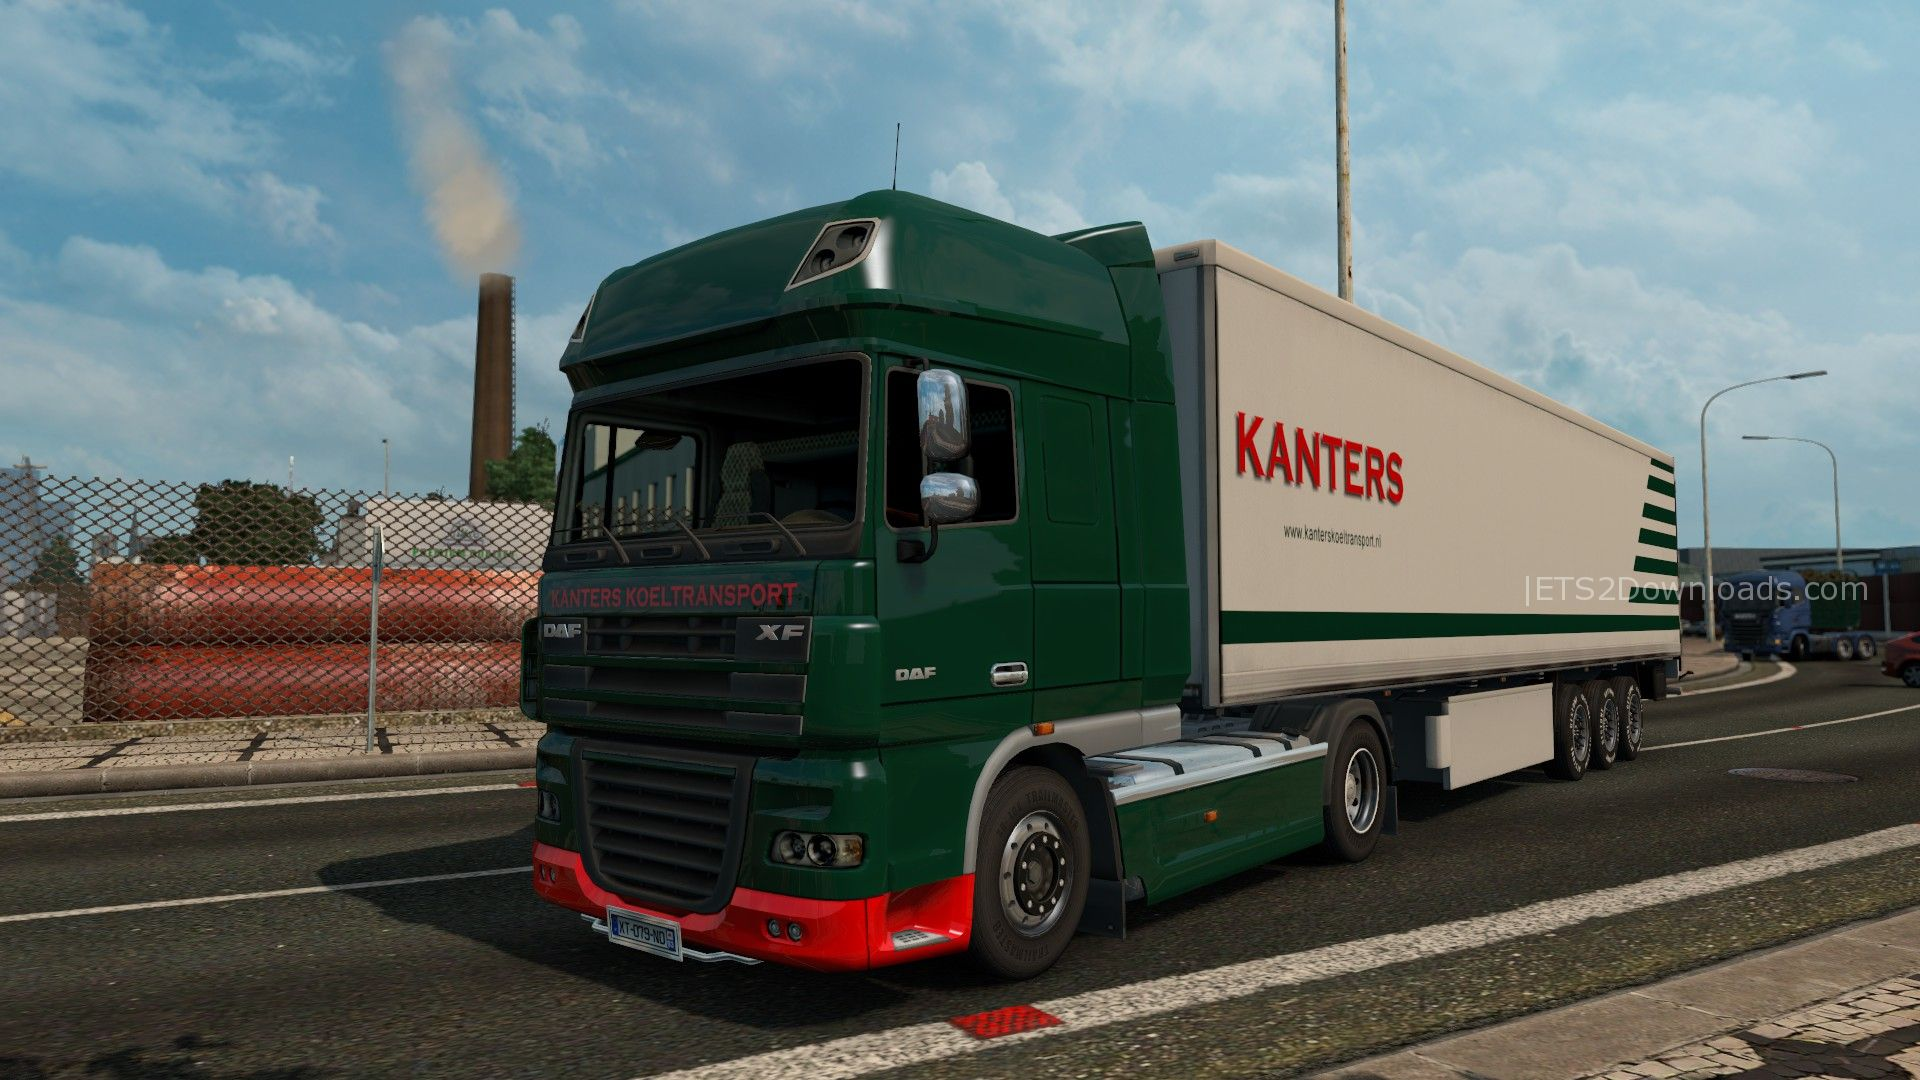 kanters-koeltransport-combo-pack-for-daf-xf